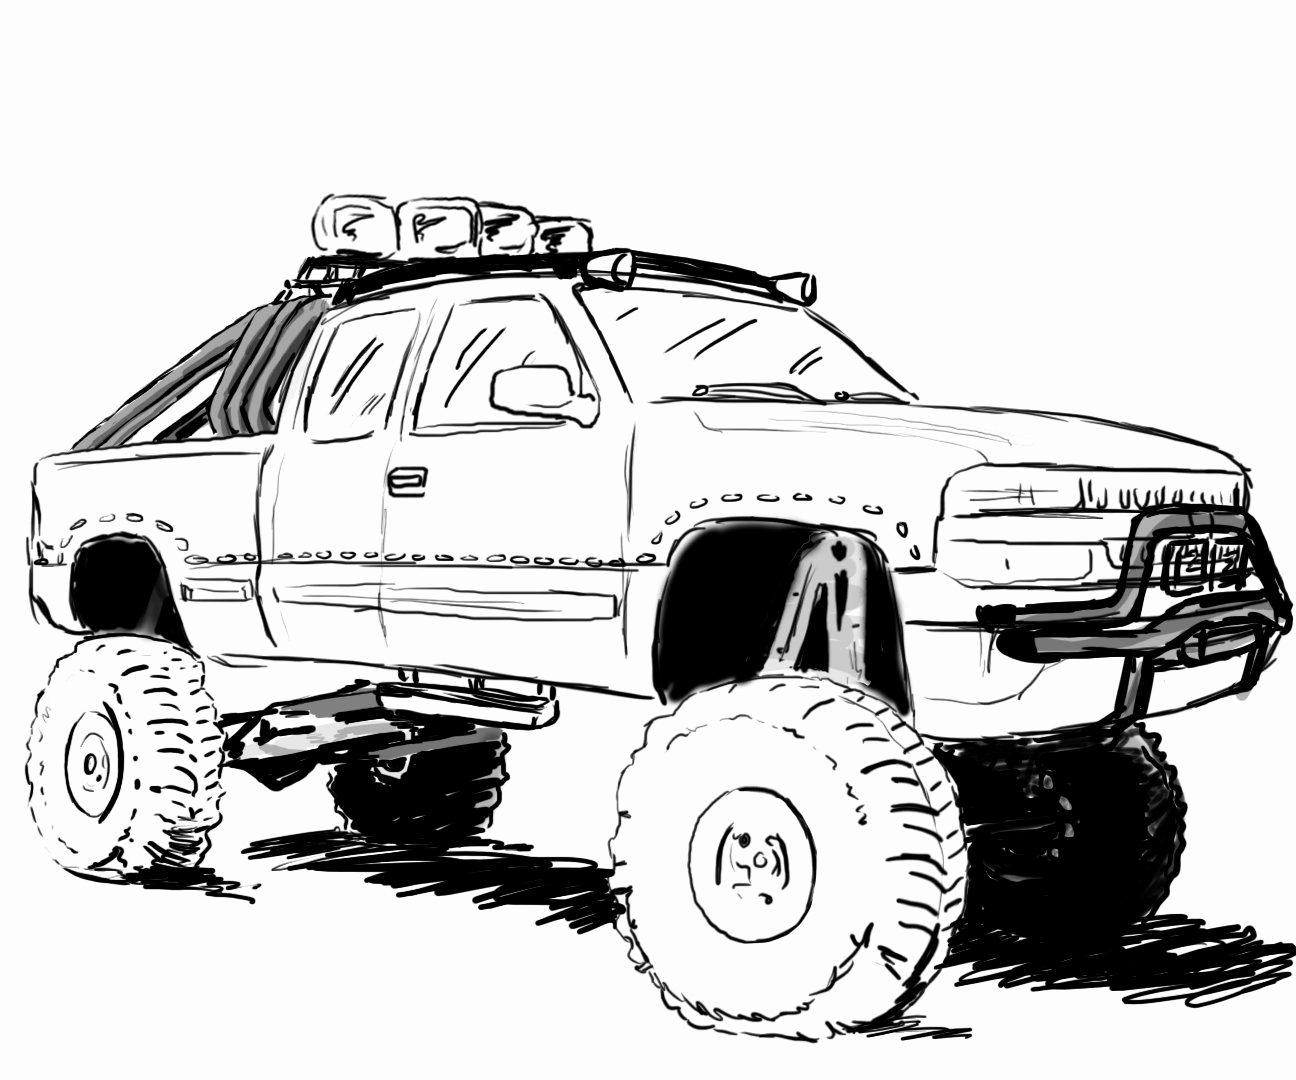 f250 dually wiring diagram database 1995 Ford F-350 Dually the best free lifted coloring page images download from 24 free kit for f250 dually f250 dually